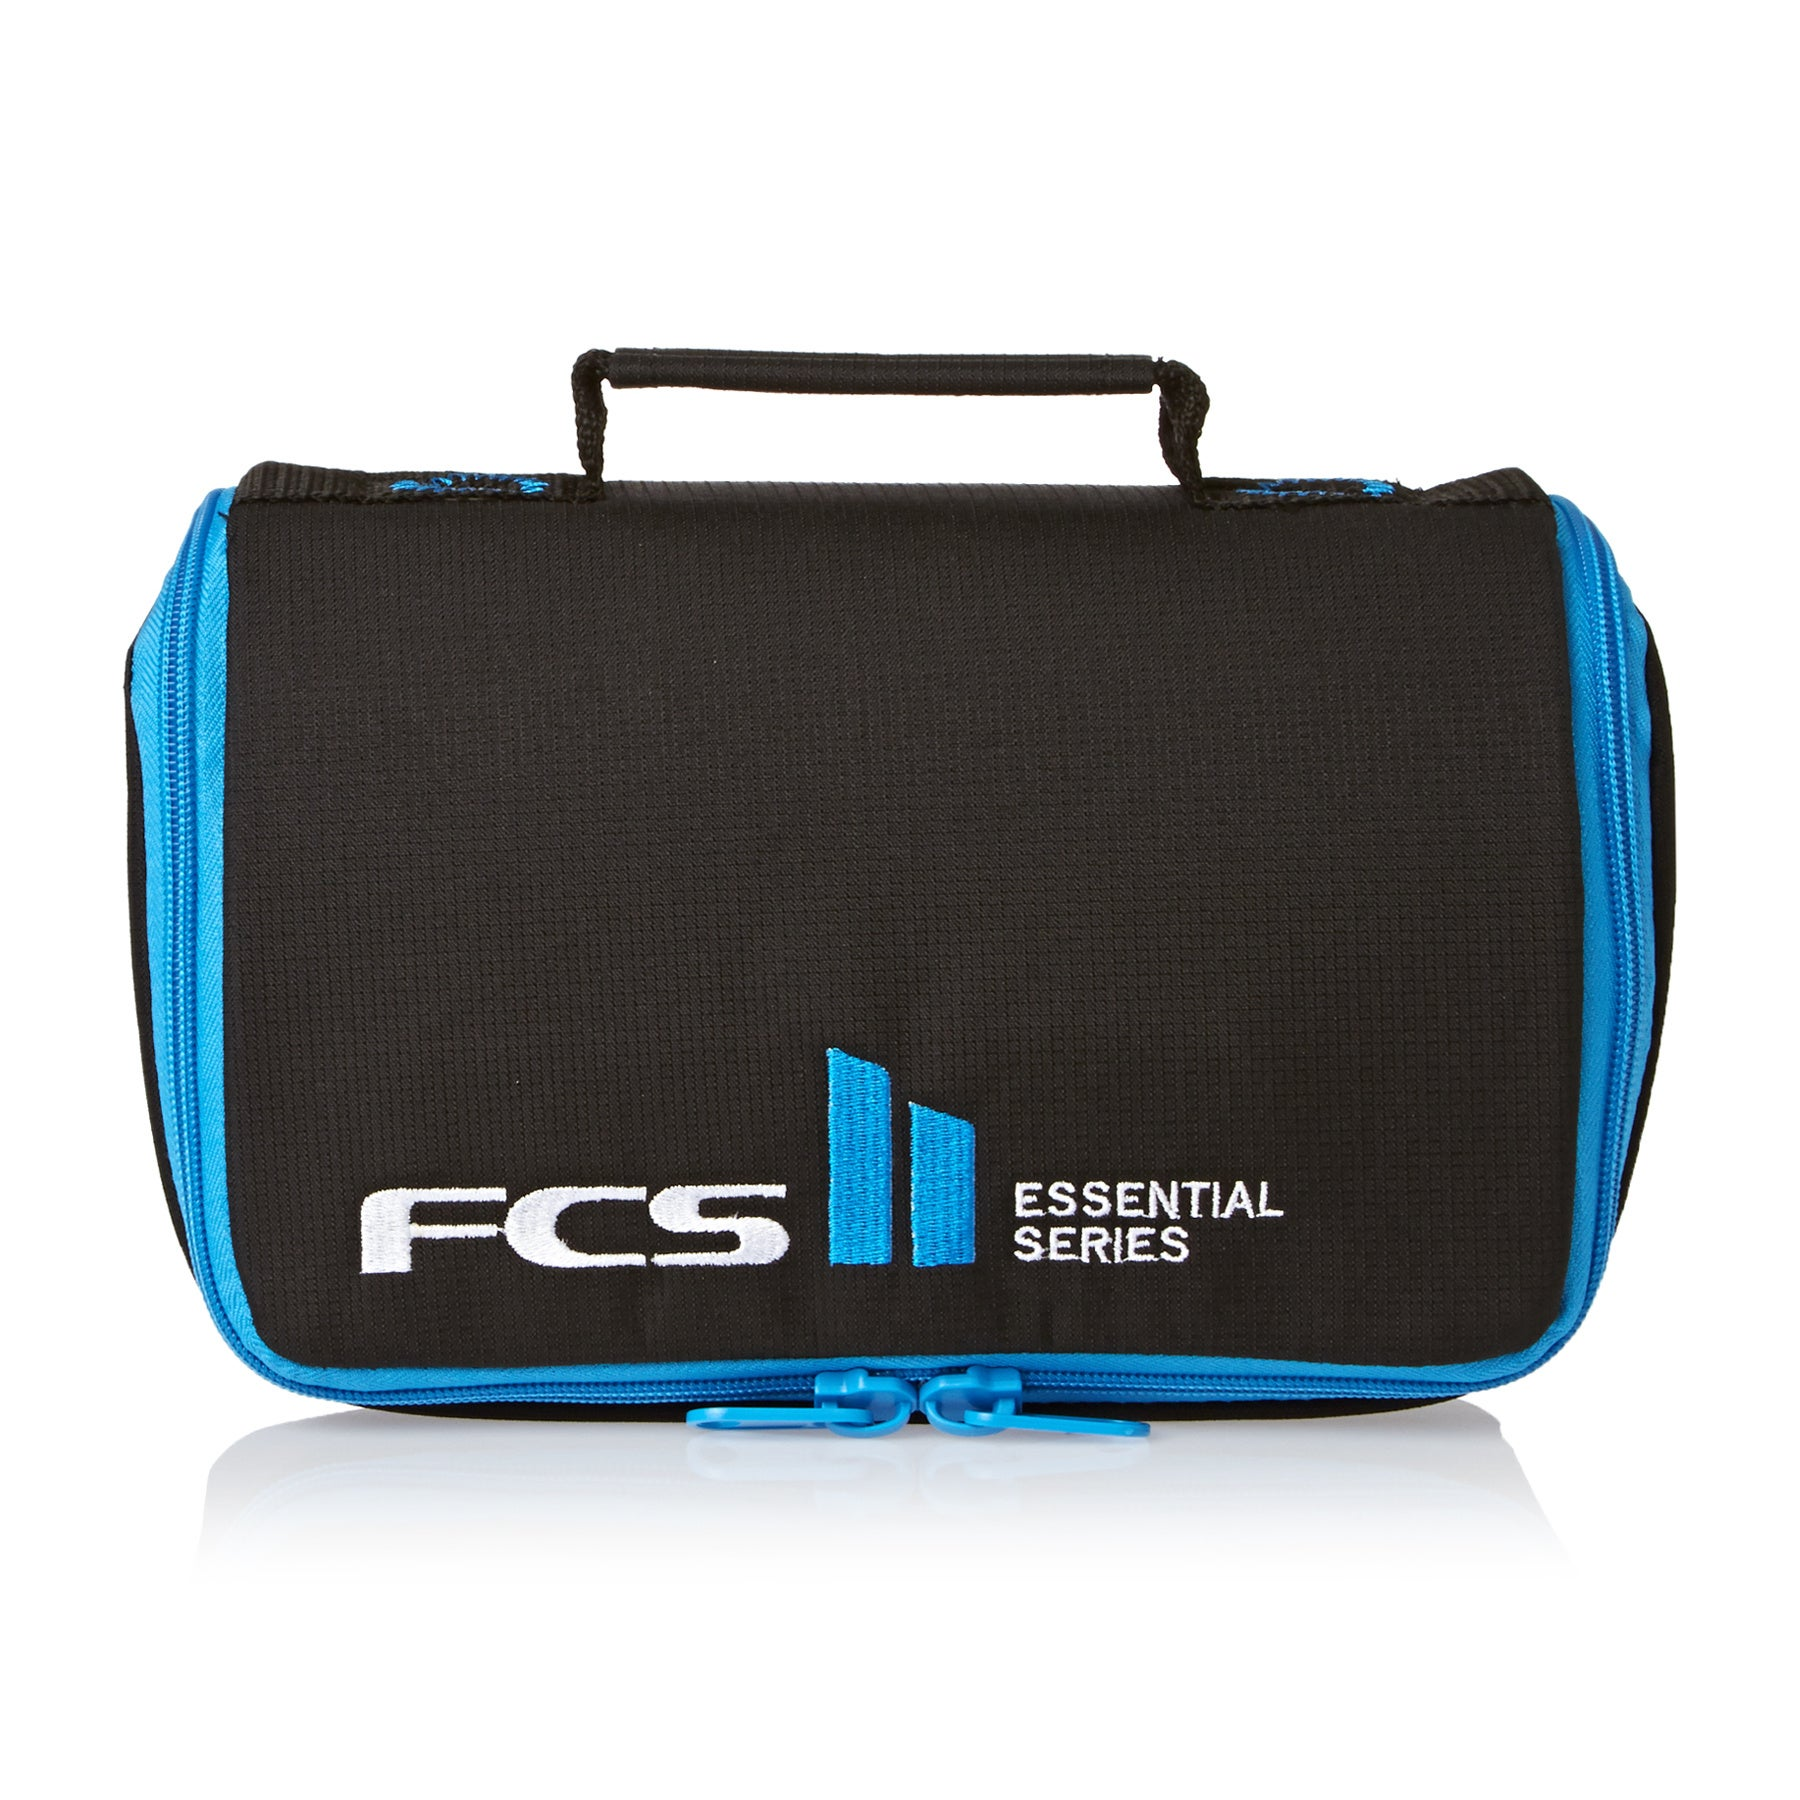 FCS Shortboard Wallet for 3 Fin - Black